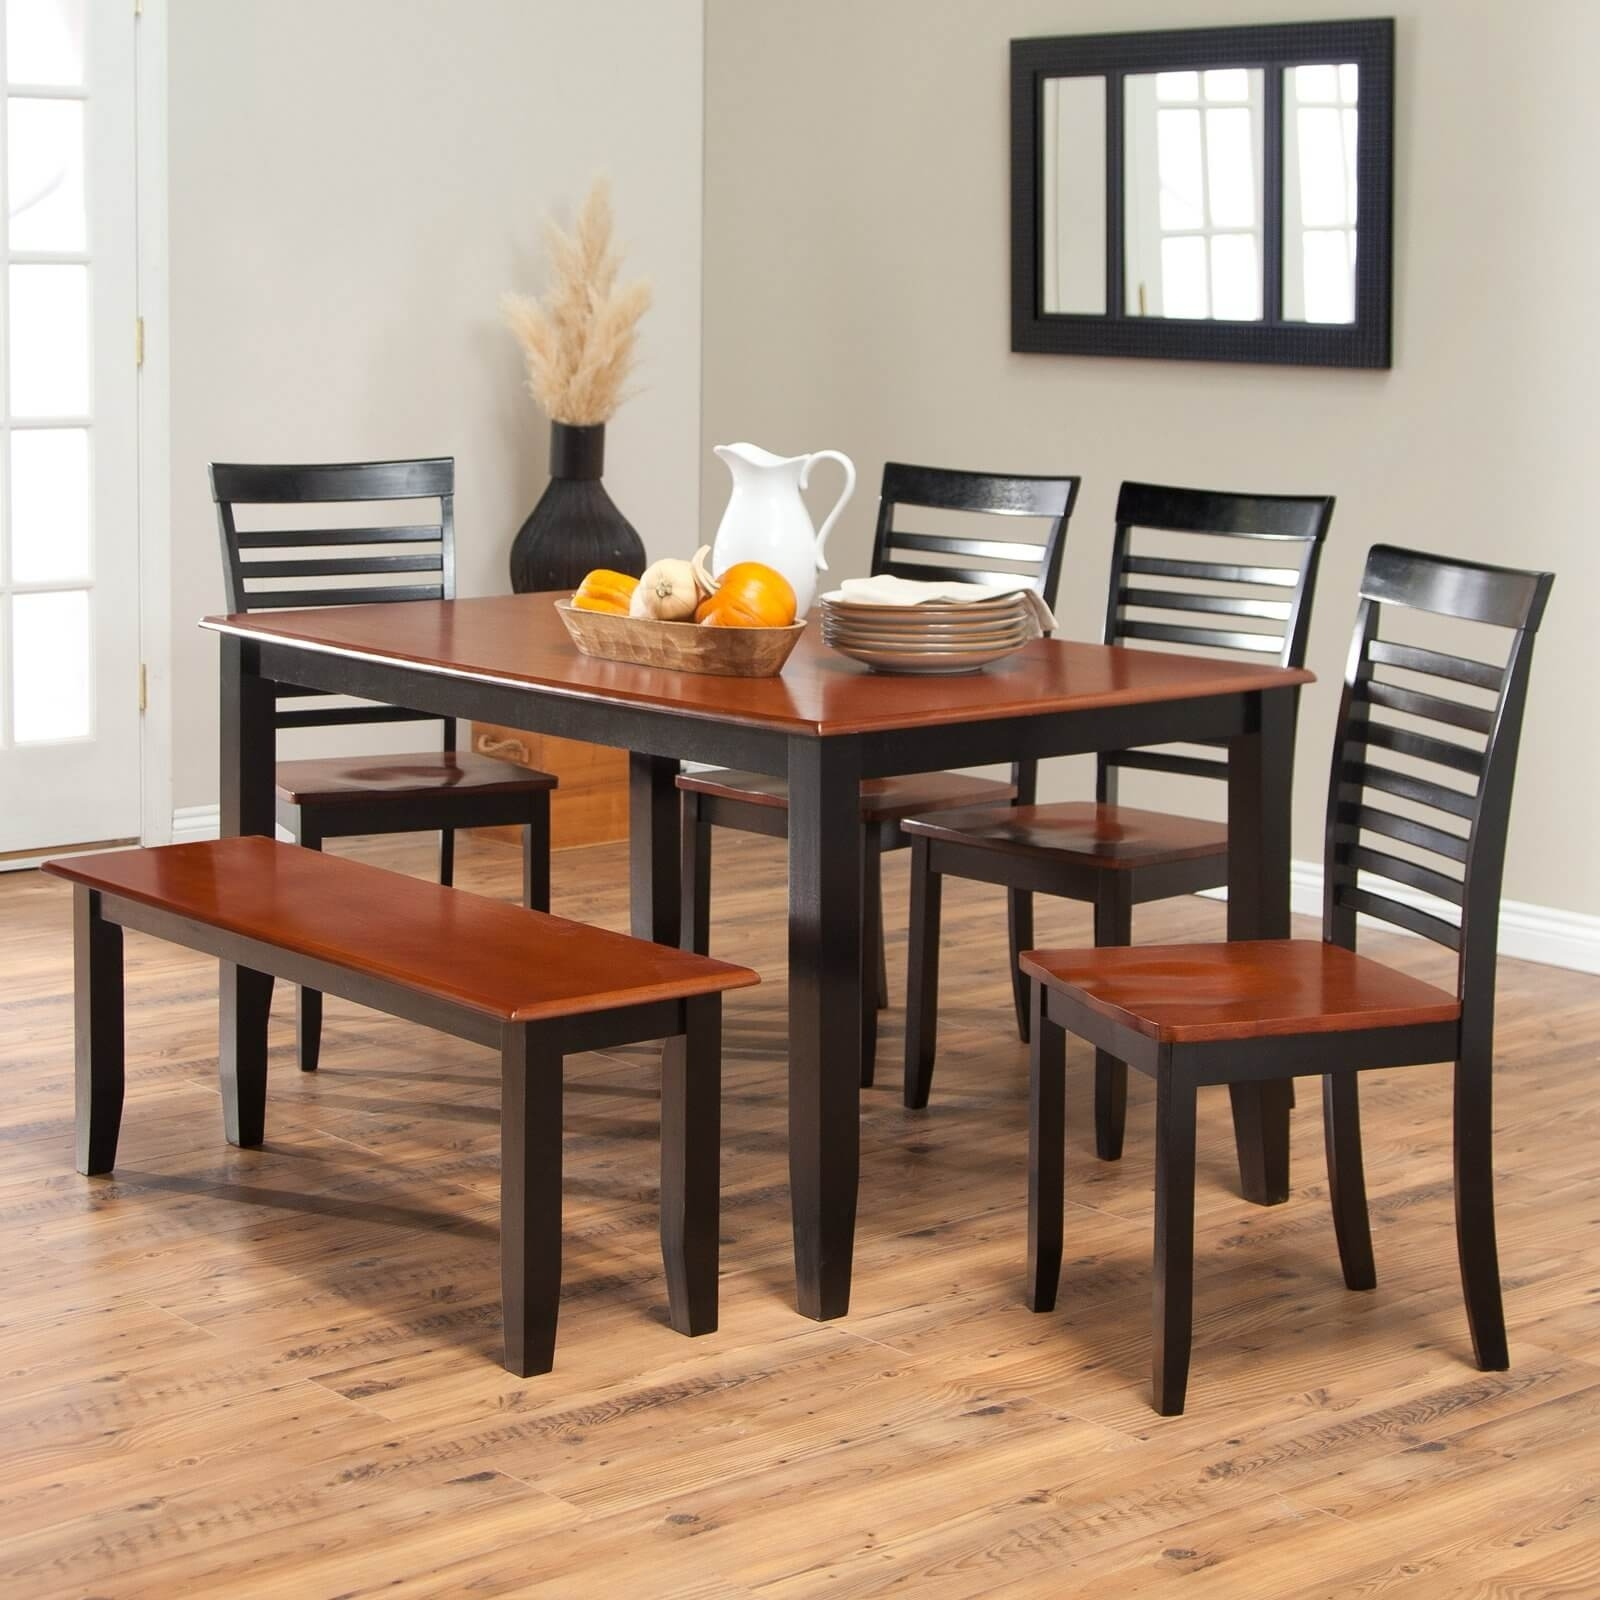 26 Dining Room Sets (Big And Small) With Bench Seating (2018) For Most Up To Date Craftsman 5 Piece Round Dining Sets With Uph Side Chairs (Image 1 of 20)